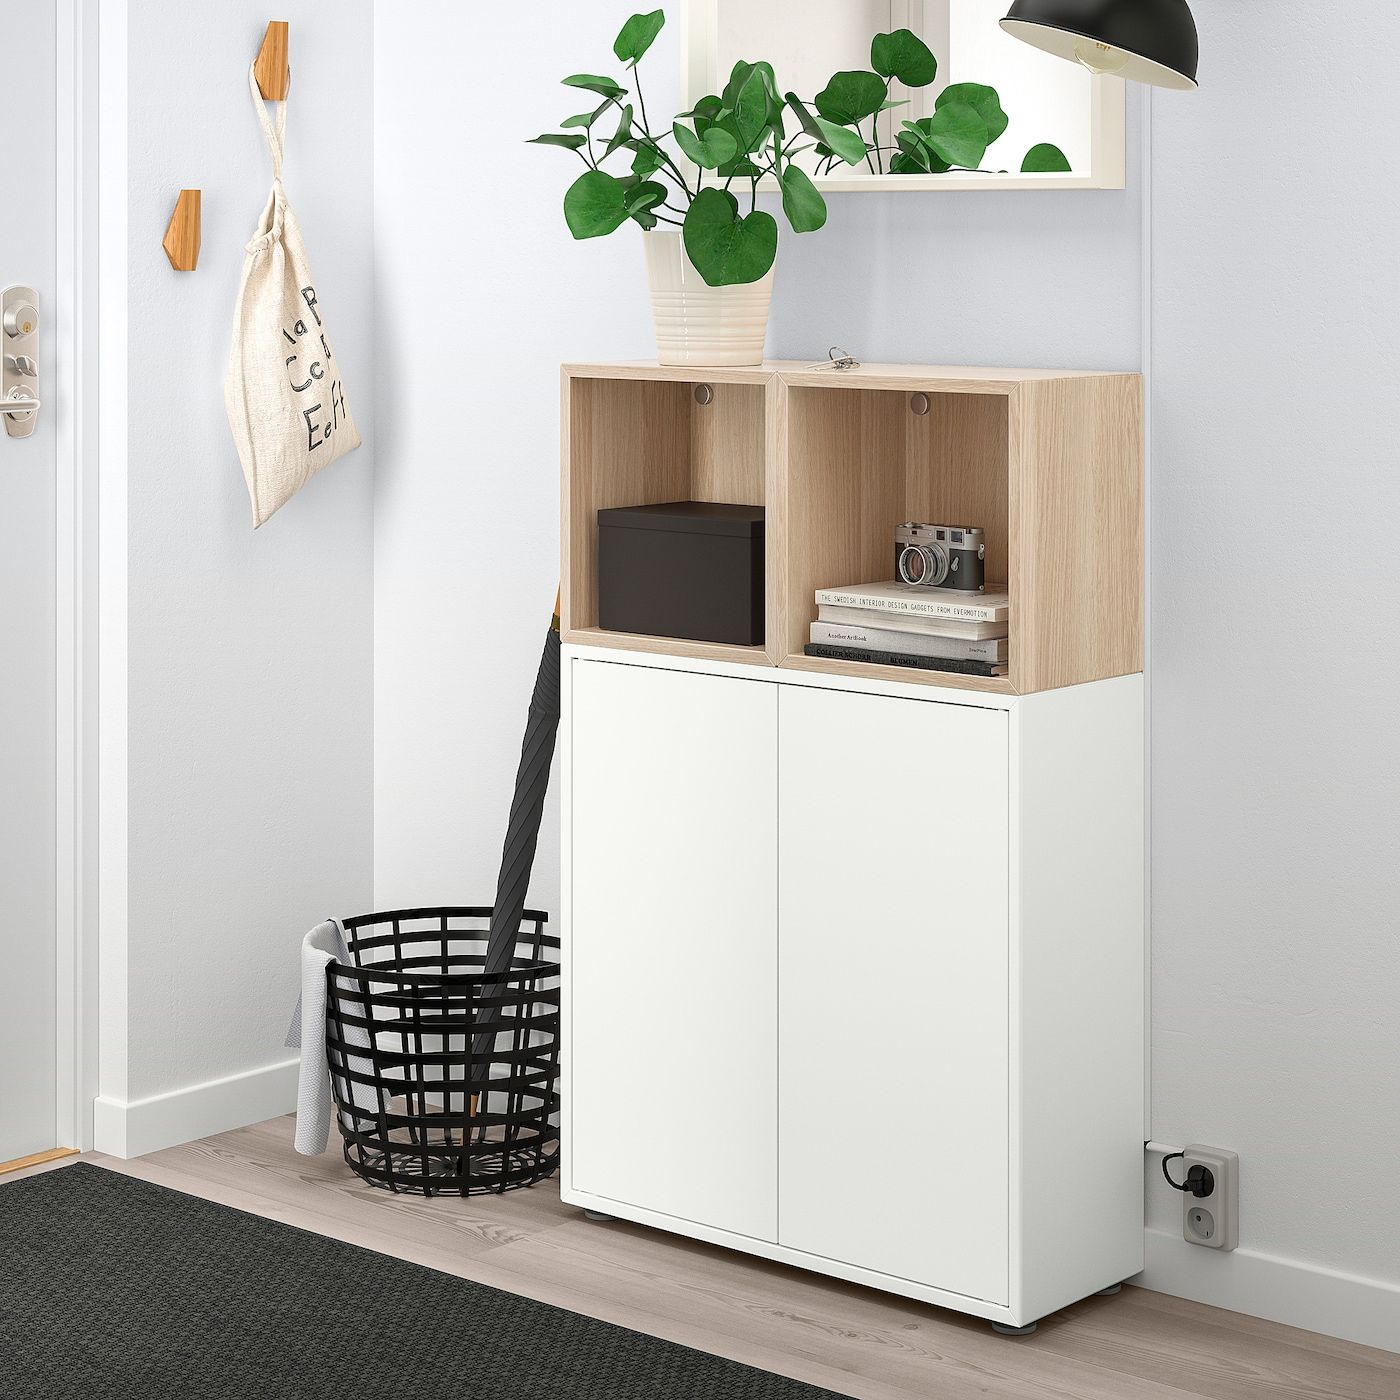 Eket Storage Combination With Feet White White Stained Oak Effect Width 27 Ikea In 2020 Eket Ikea Eket Flexible Furniture